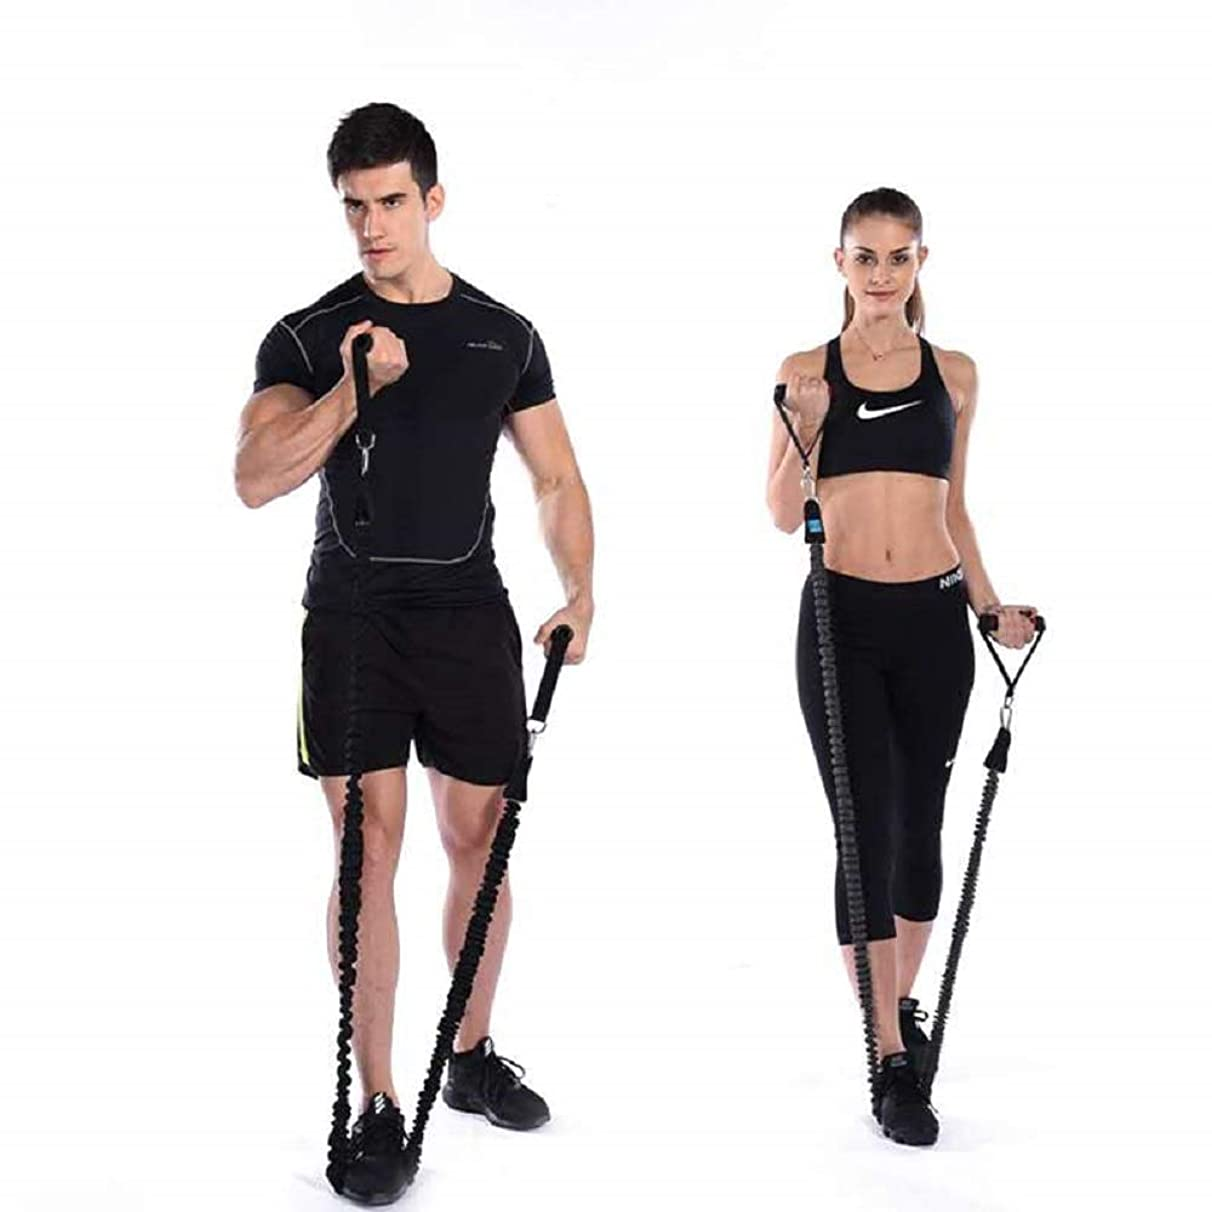 WayRun Resistance Bands, 40LB Resistance Tubes with Heavy Duty Protective Nylon Sleeves Anti-Snap for Fitness